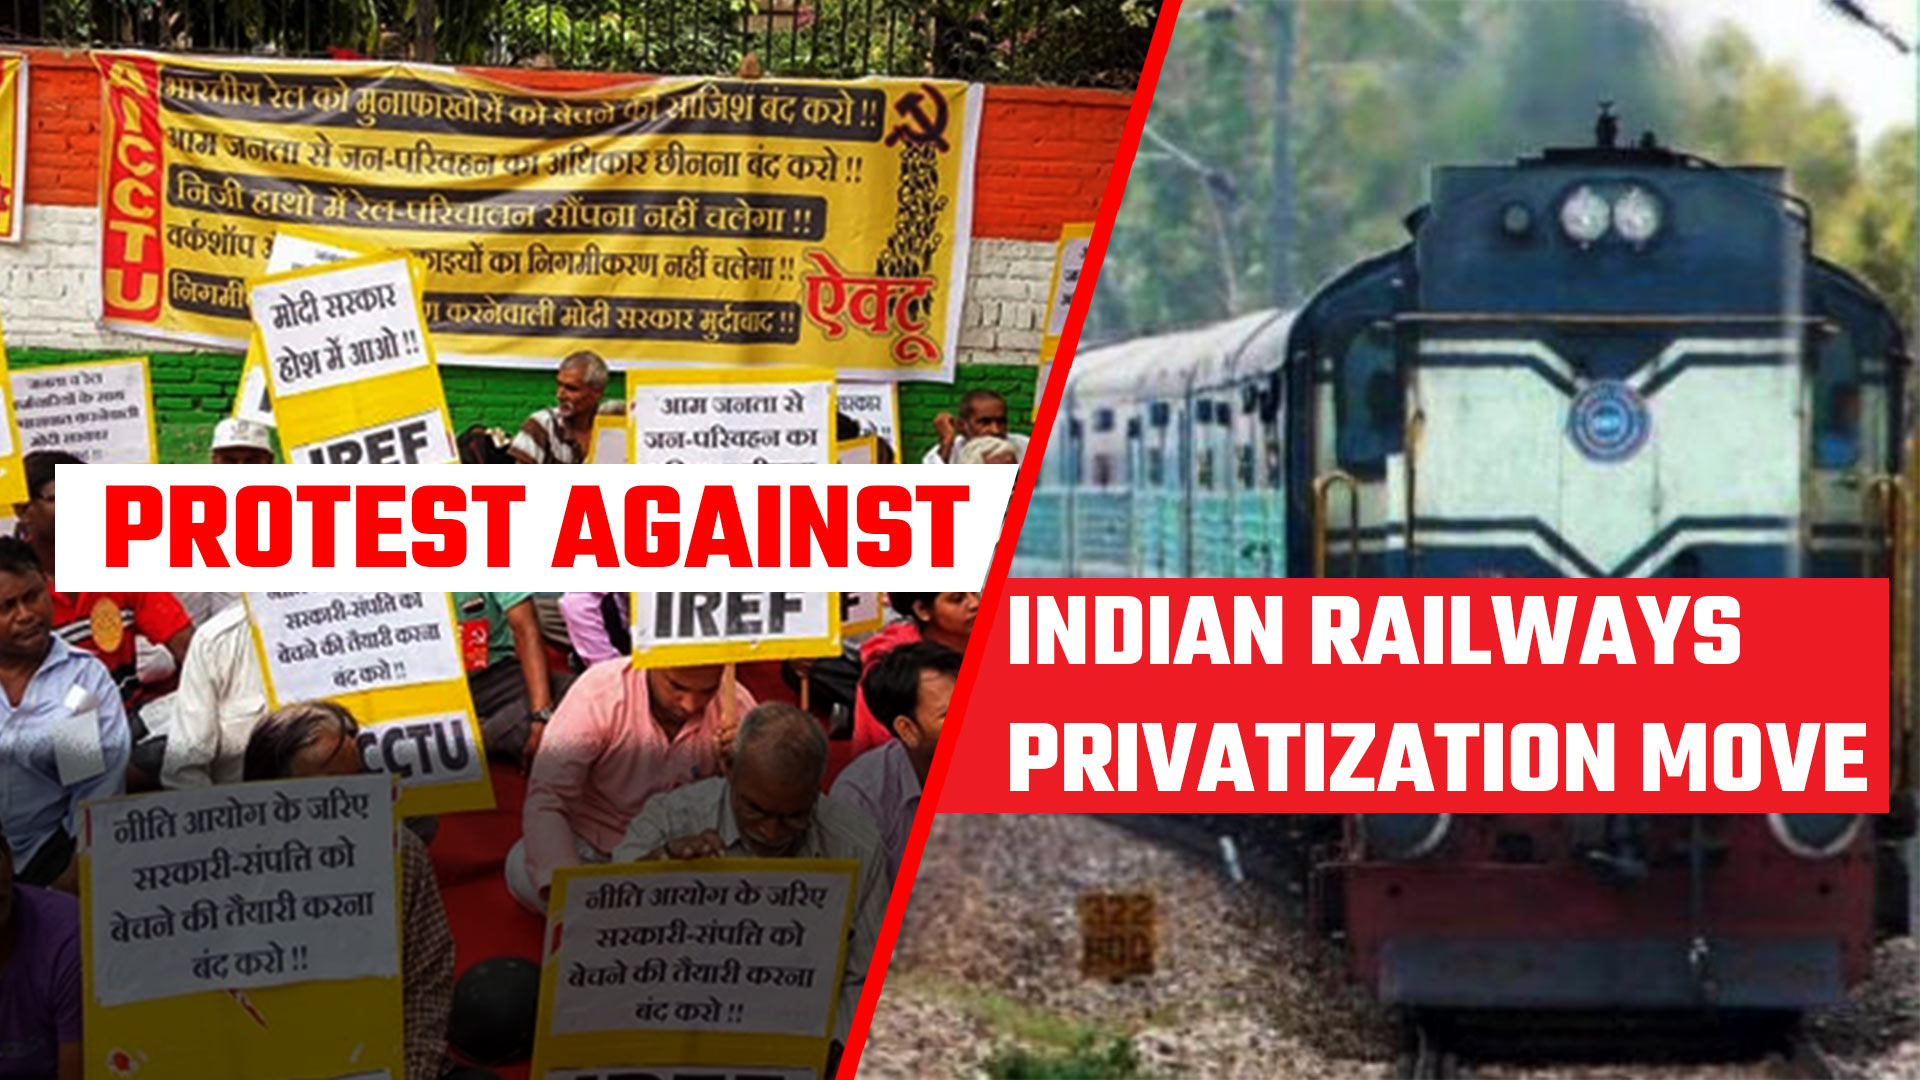 Protest against Indian Railways privatization move AICCTY IREF